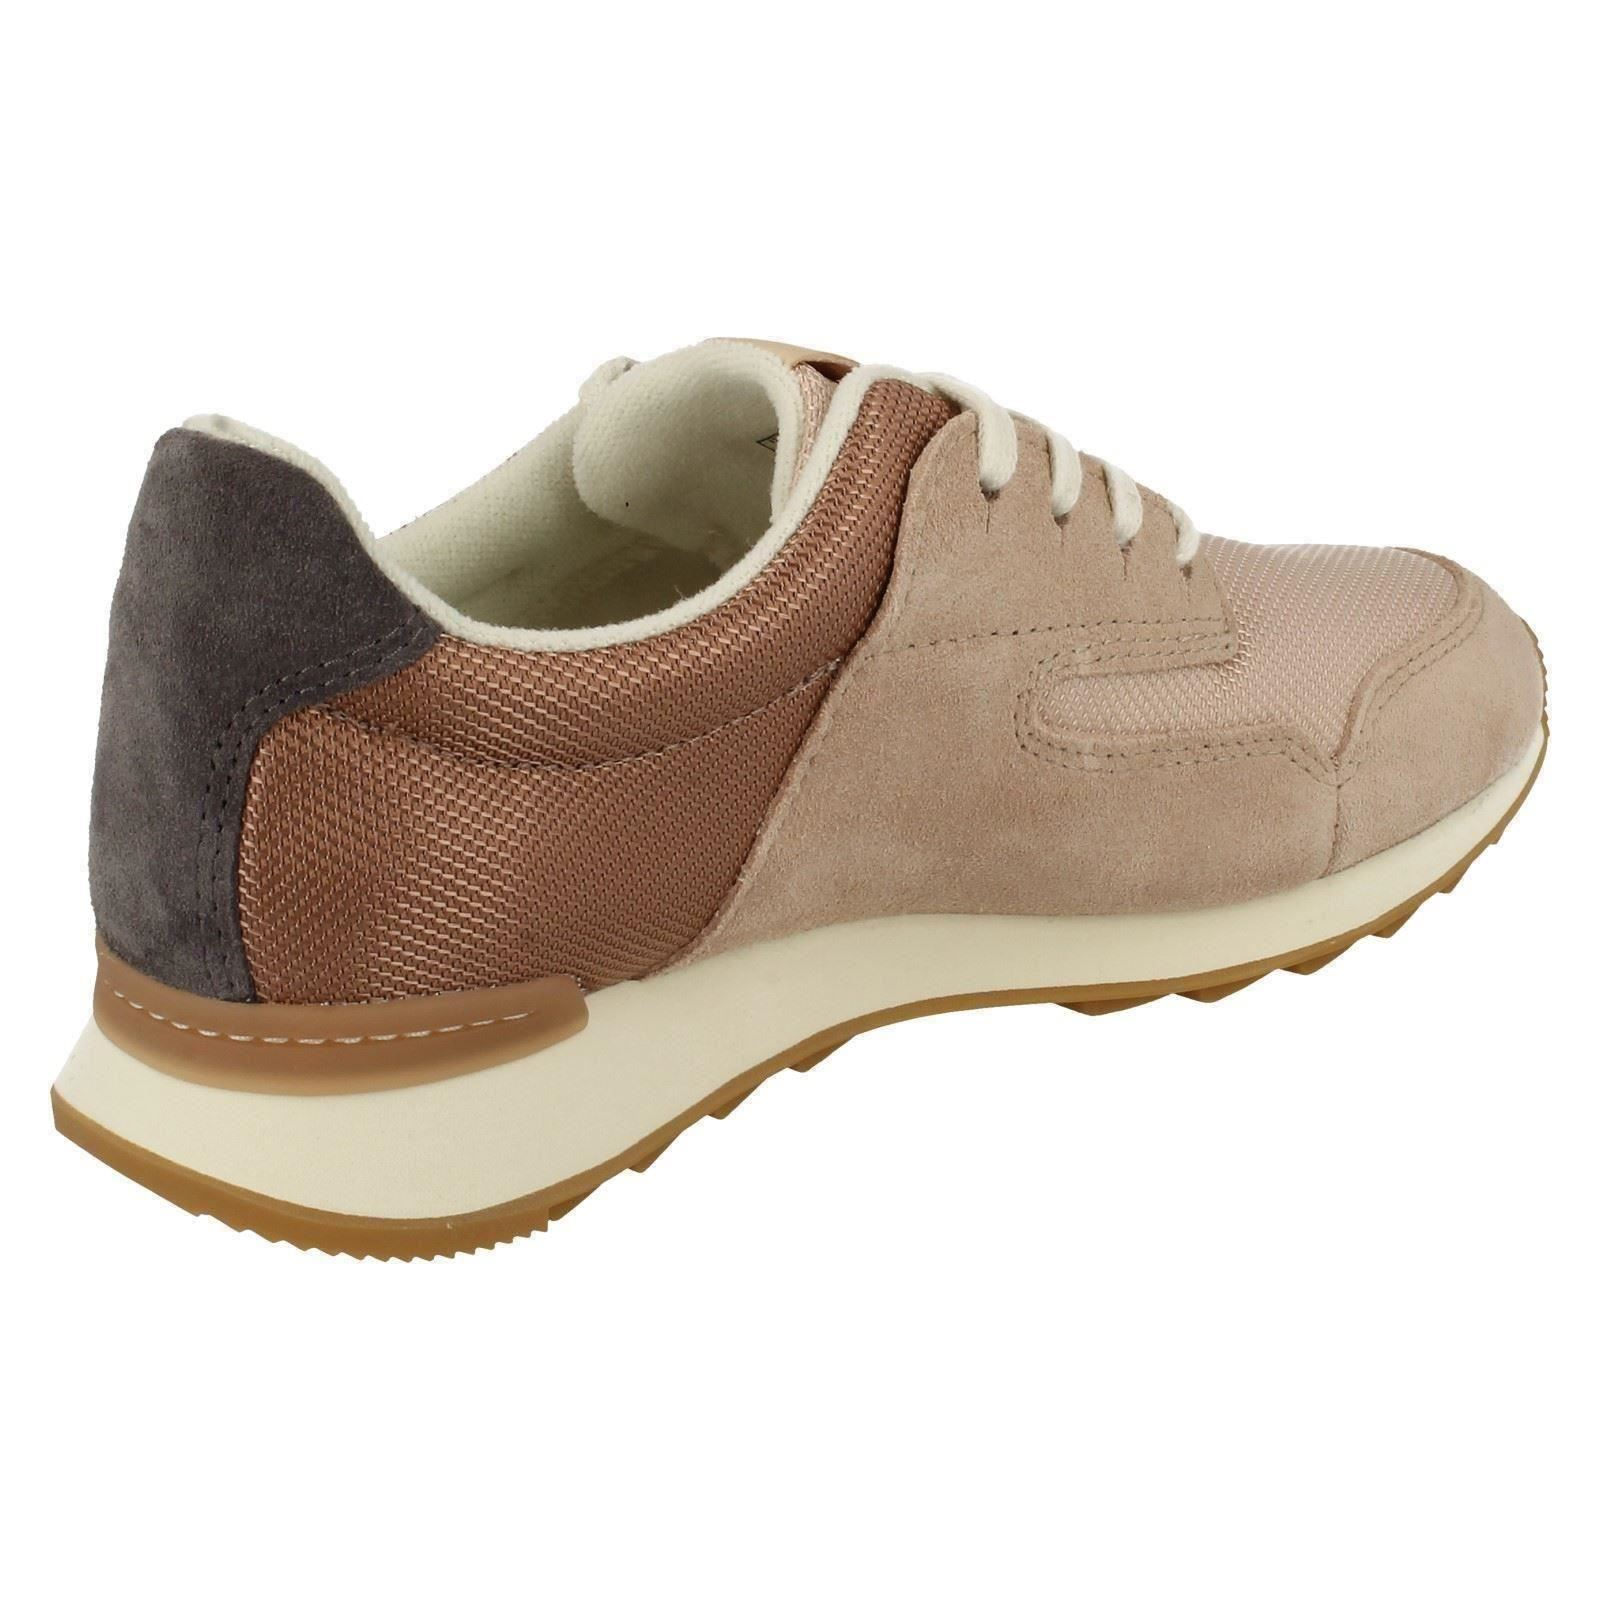 Ladies Clarks Casual Trainer Style Shoes /'Floura Mix/'